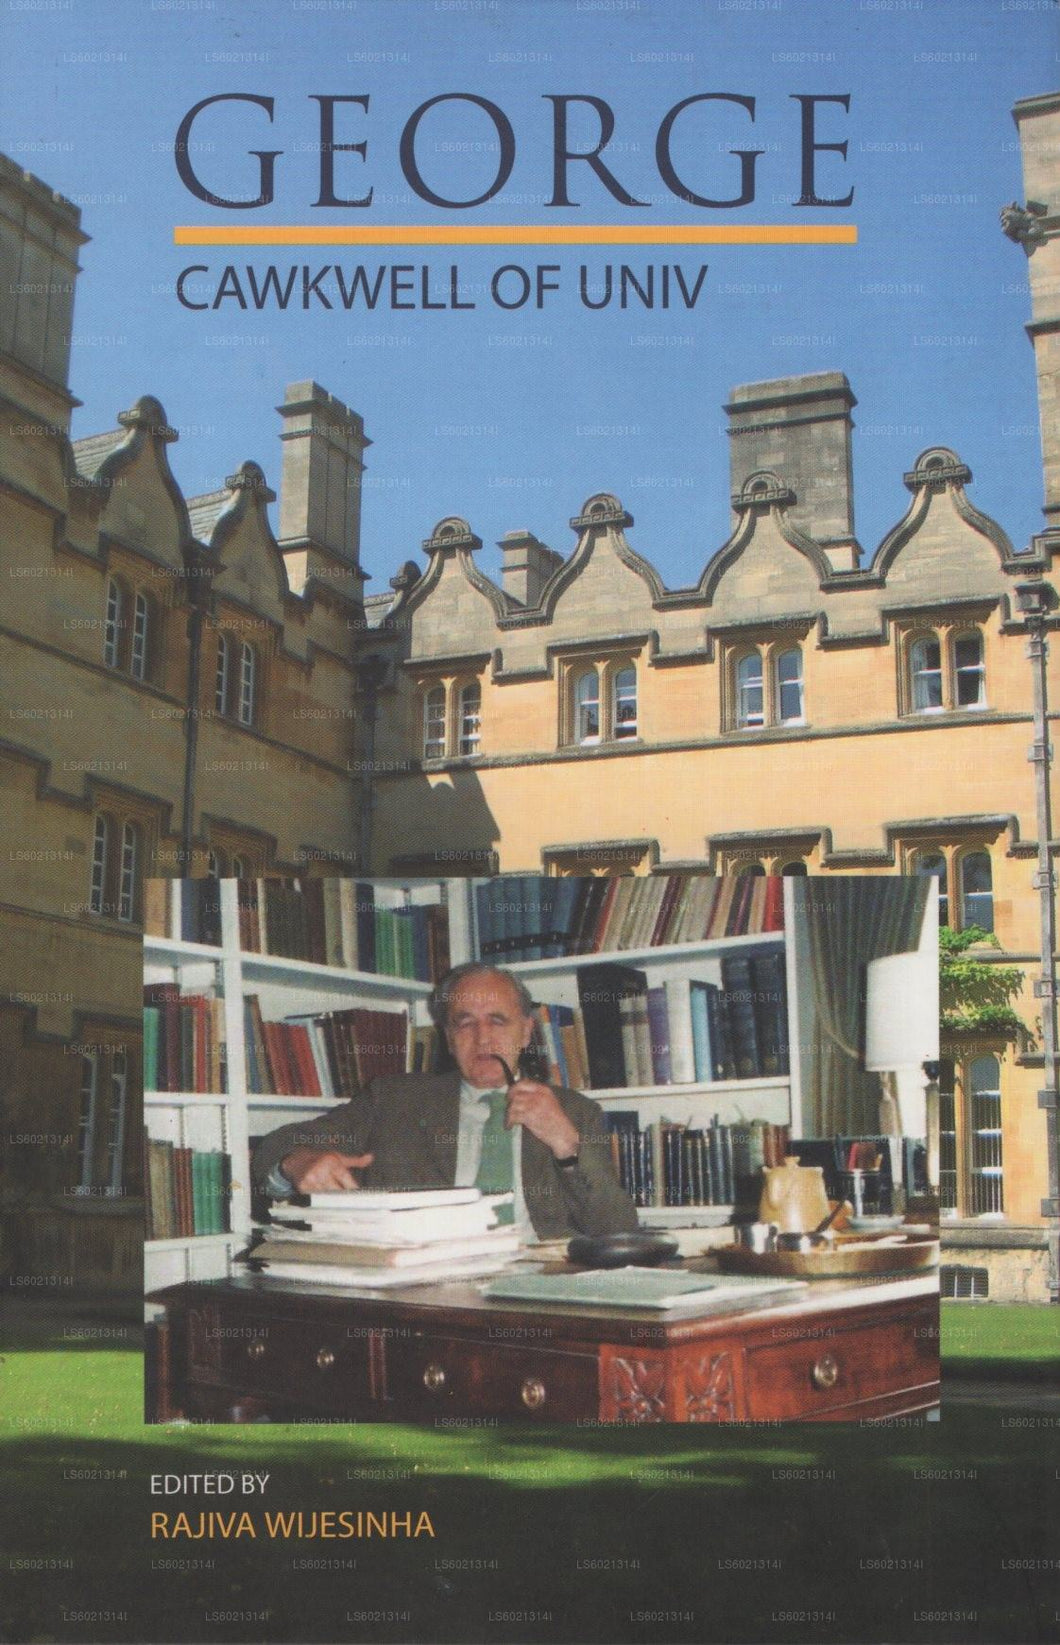 George Cawkwell of Univ